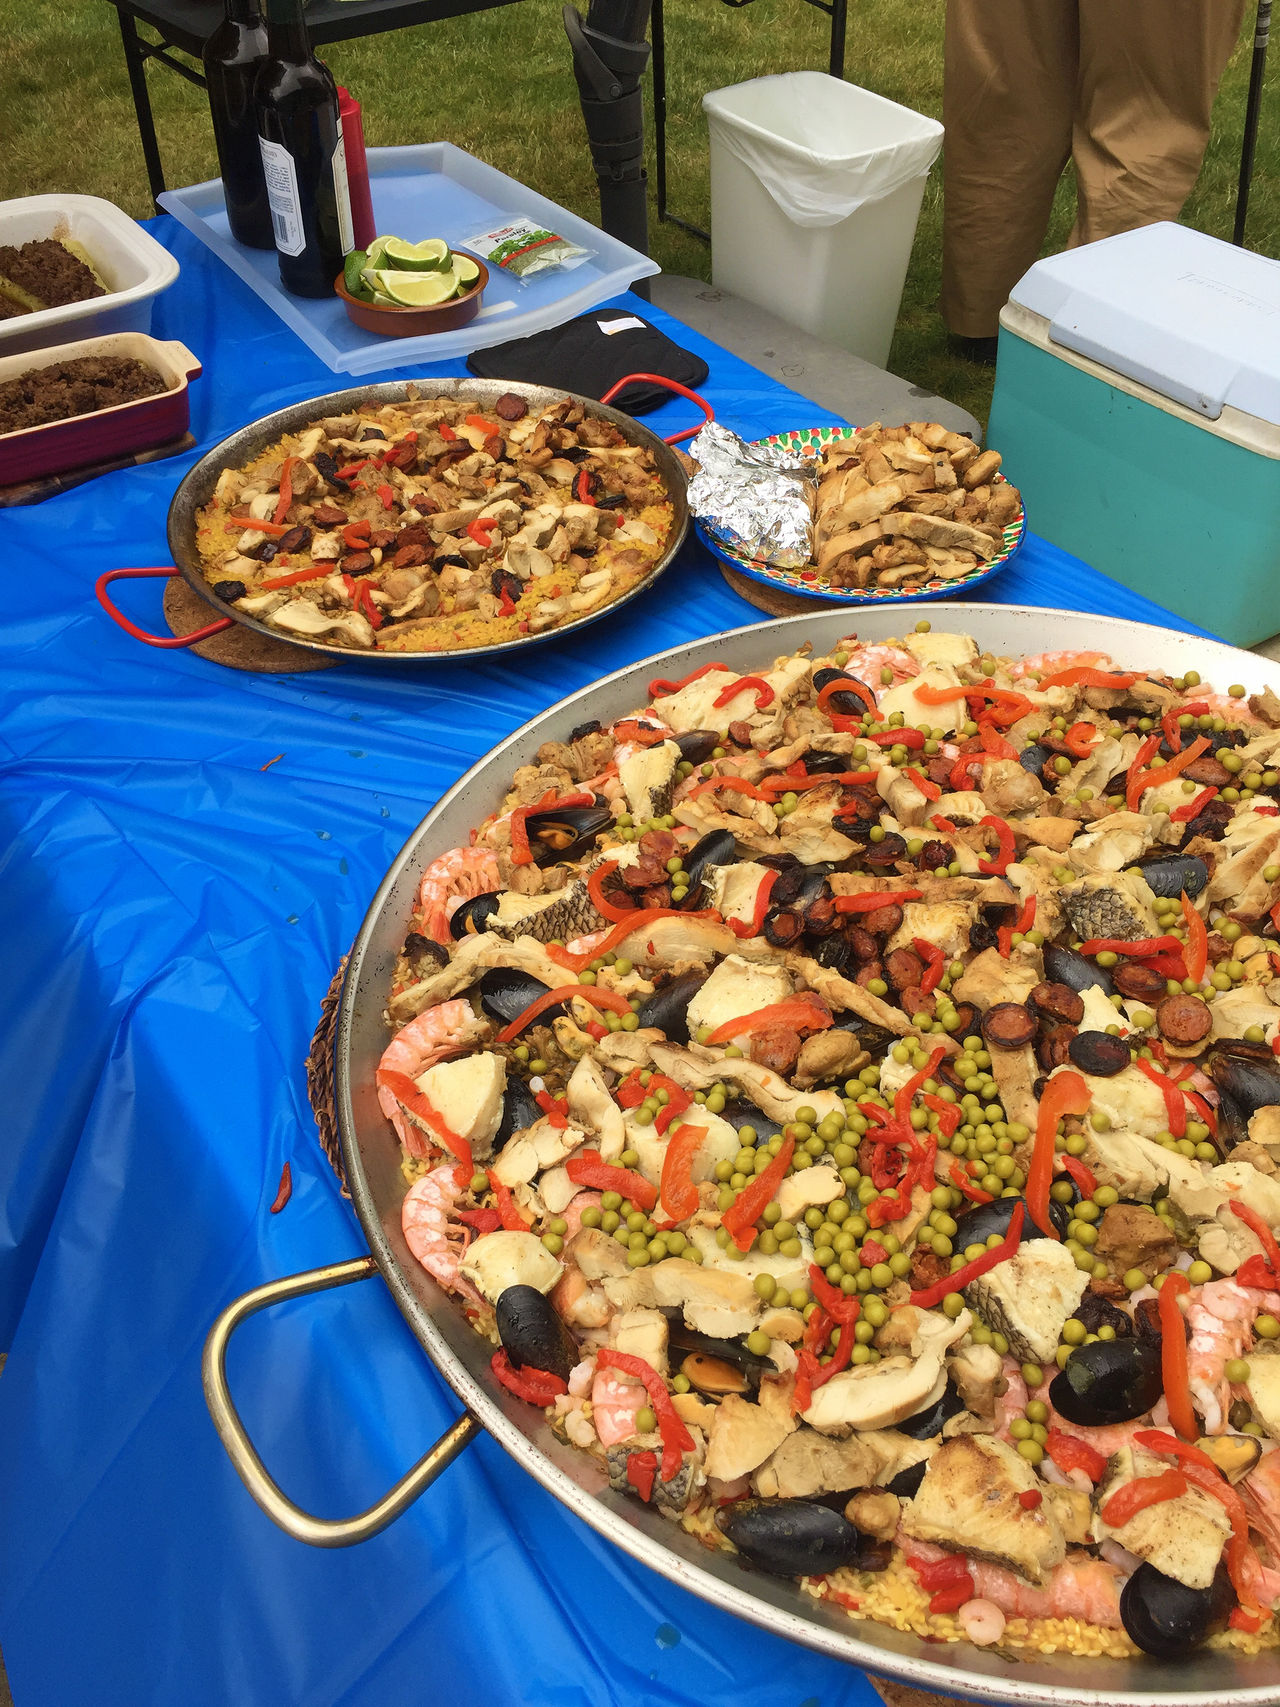 Paella for 100 people Day Food Food And Drink Freshness Healthy Eating High Angle View No People Paella Paella De Marisco Paella Pan Seafood Serving Size Spanish Table